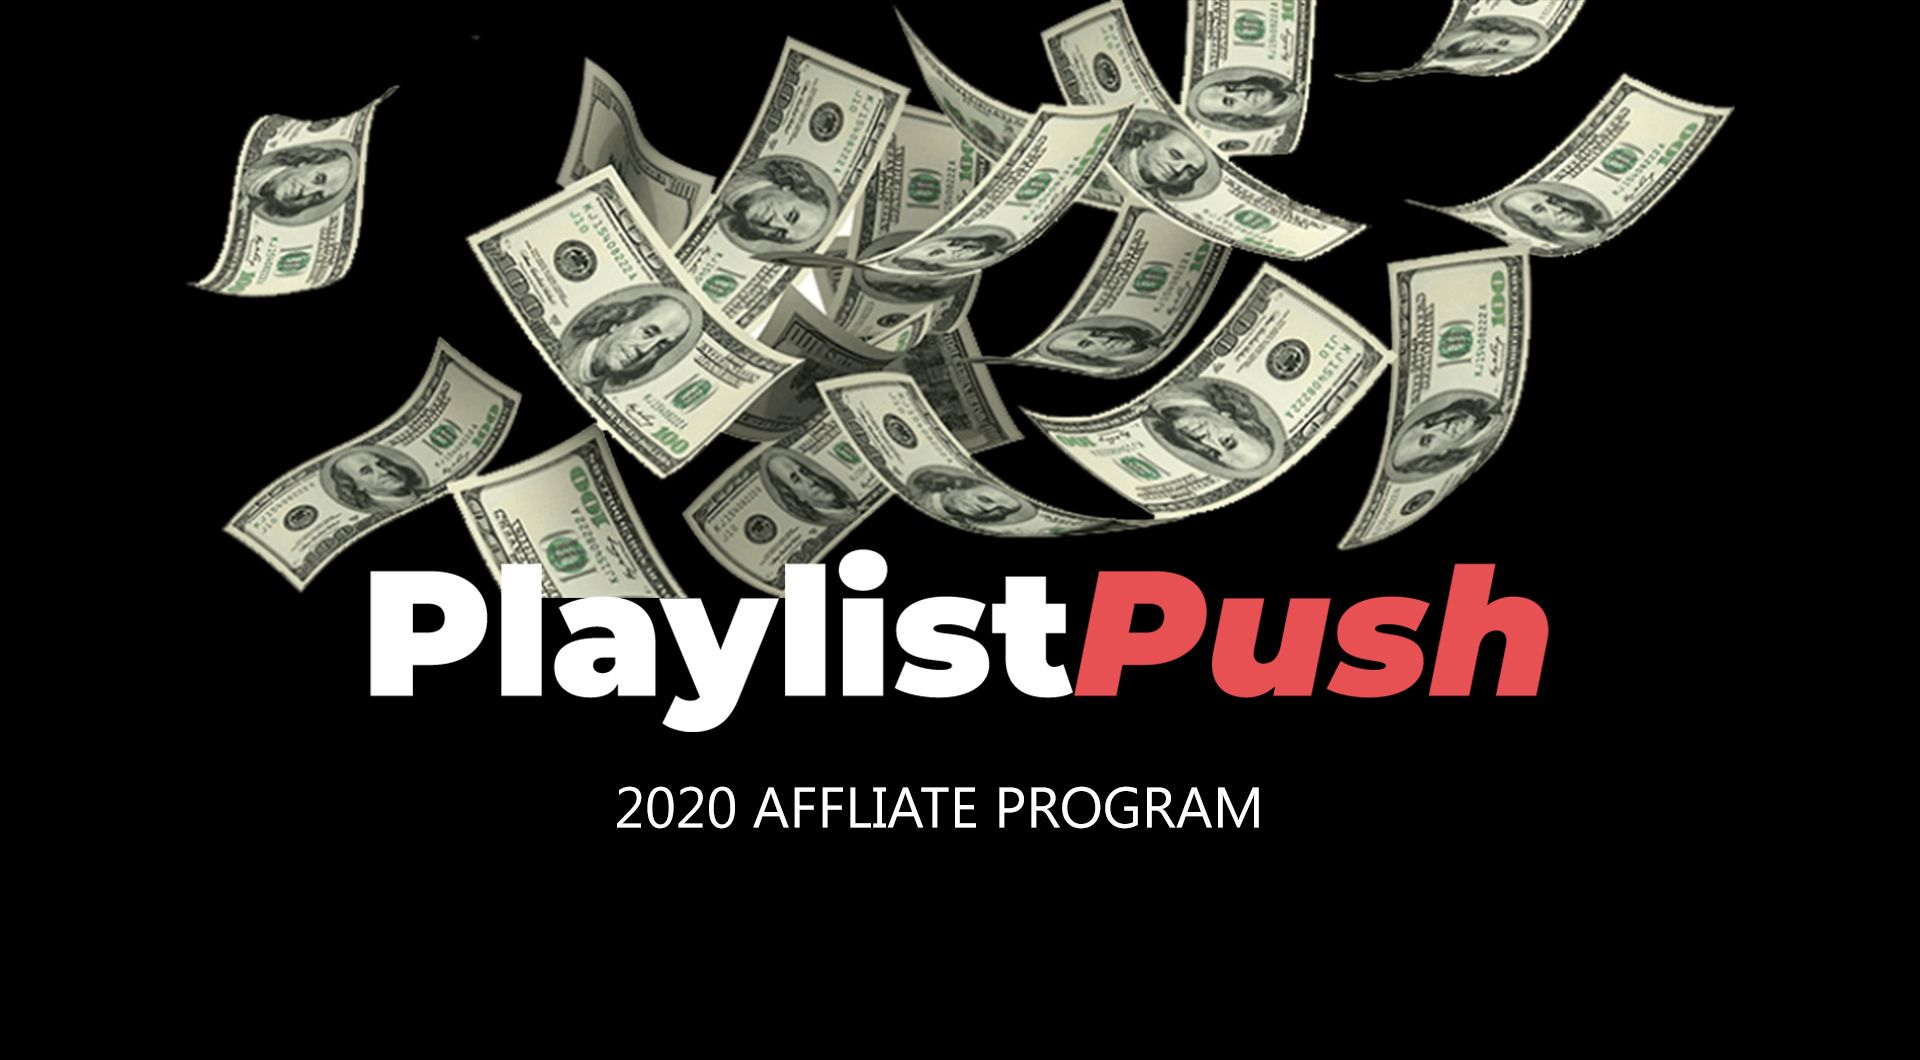 Get Paid To Tell People About Playlist Push   Affiliate Program Tips